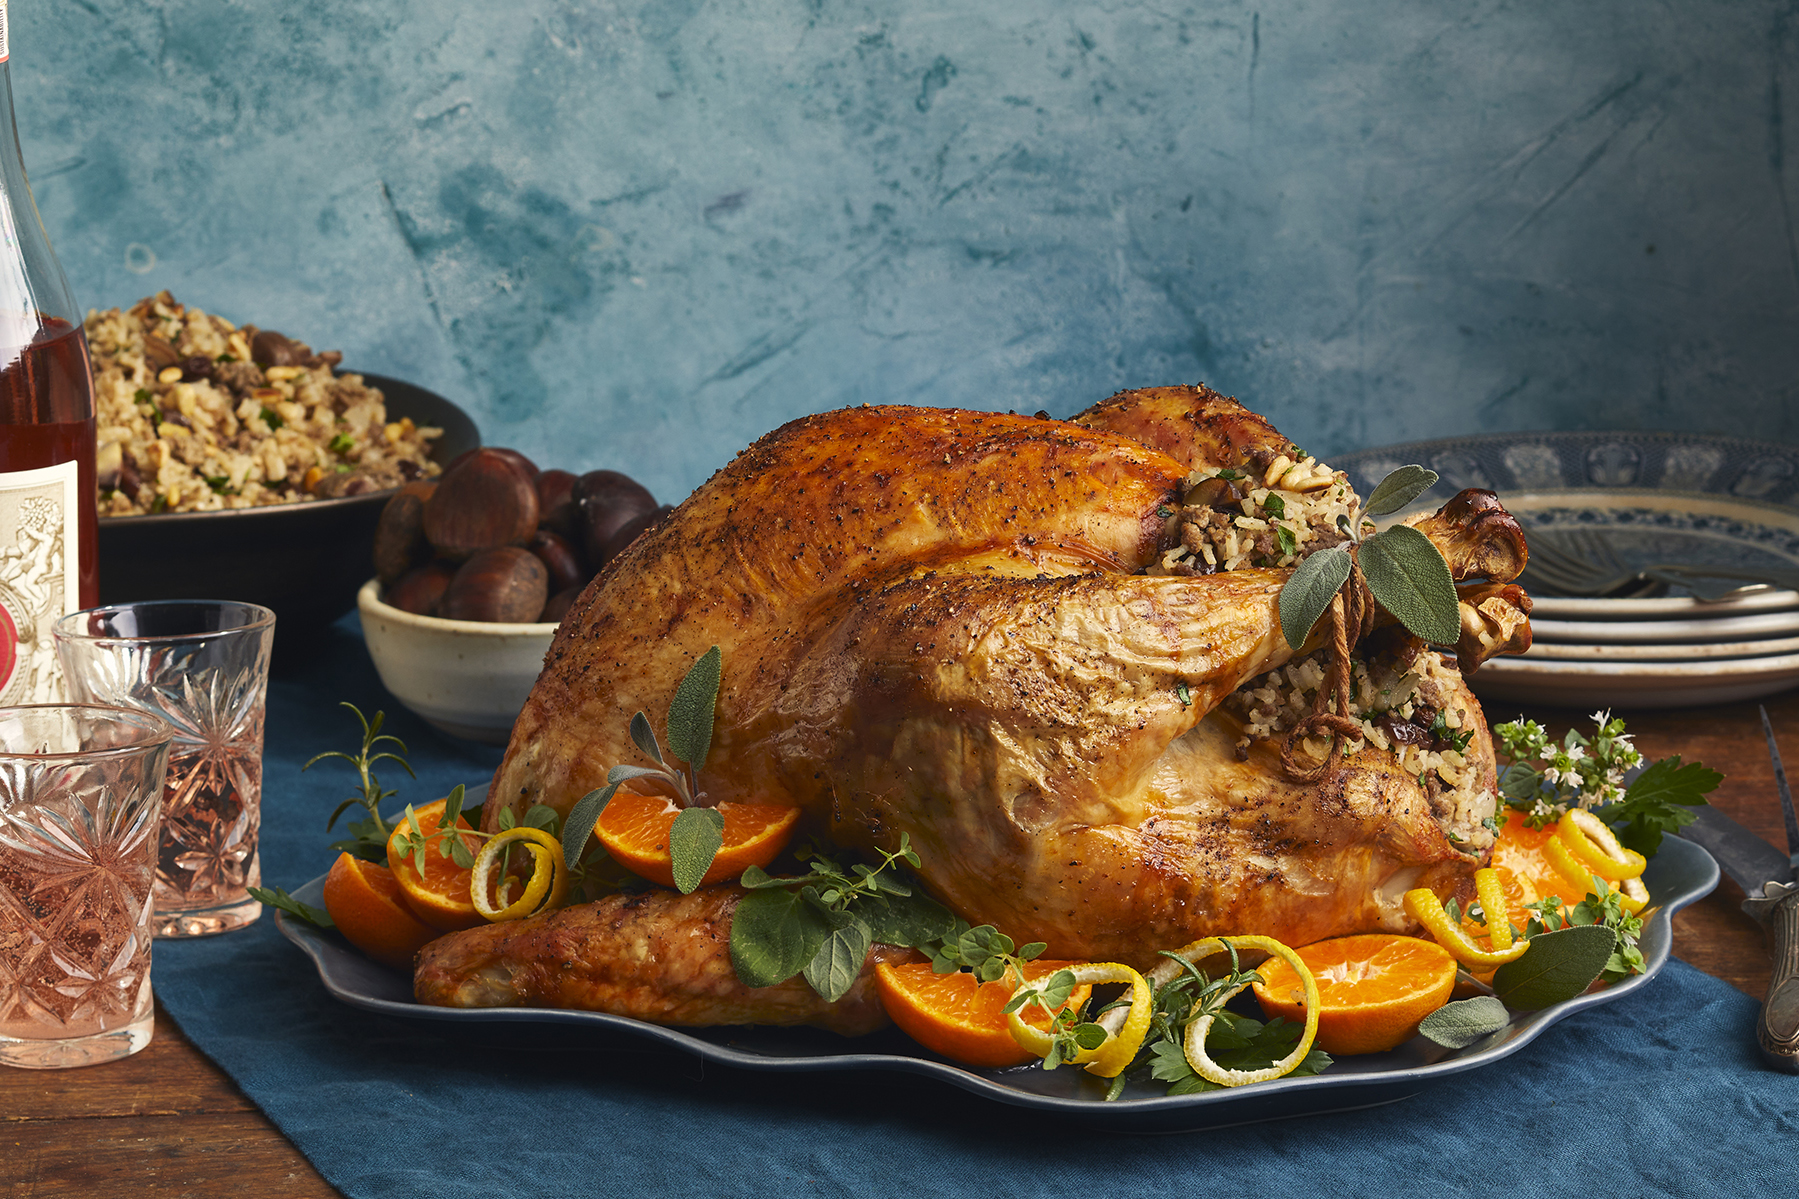 Traditional greek turkey and chestnut stuffing on a silver platter garnished with sliced oranges and fresh herbs.